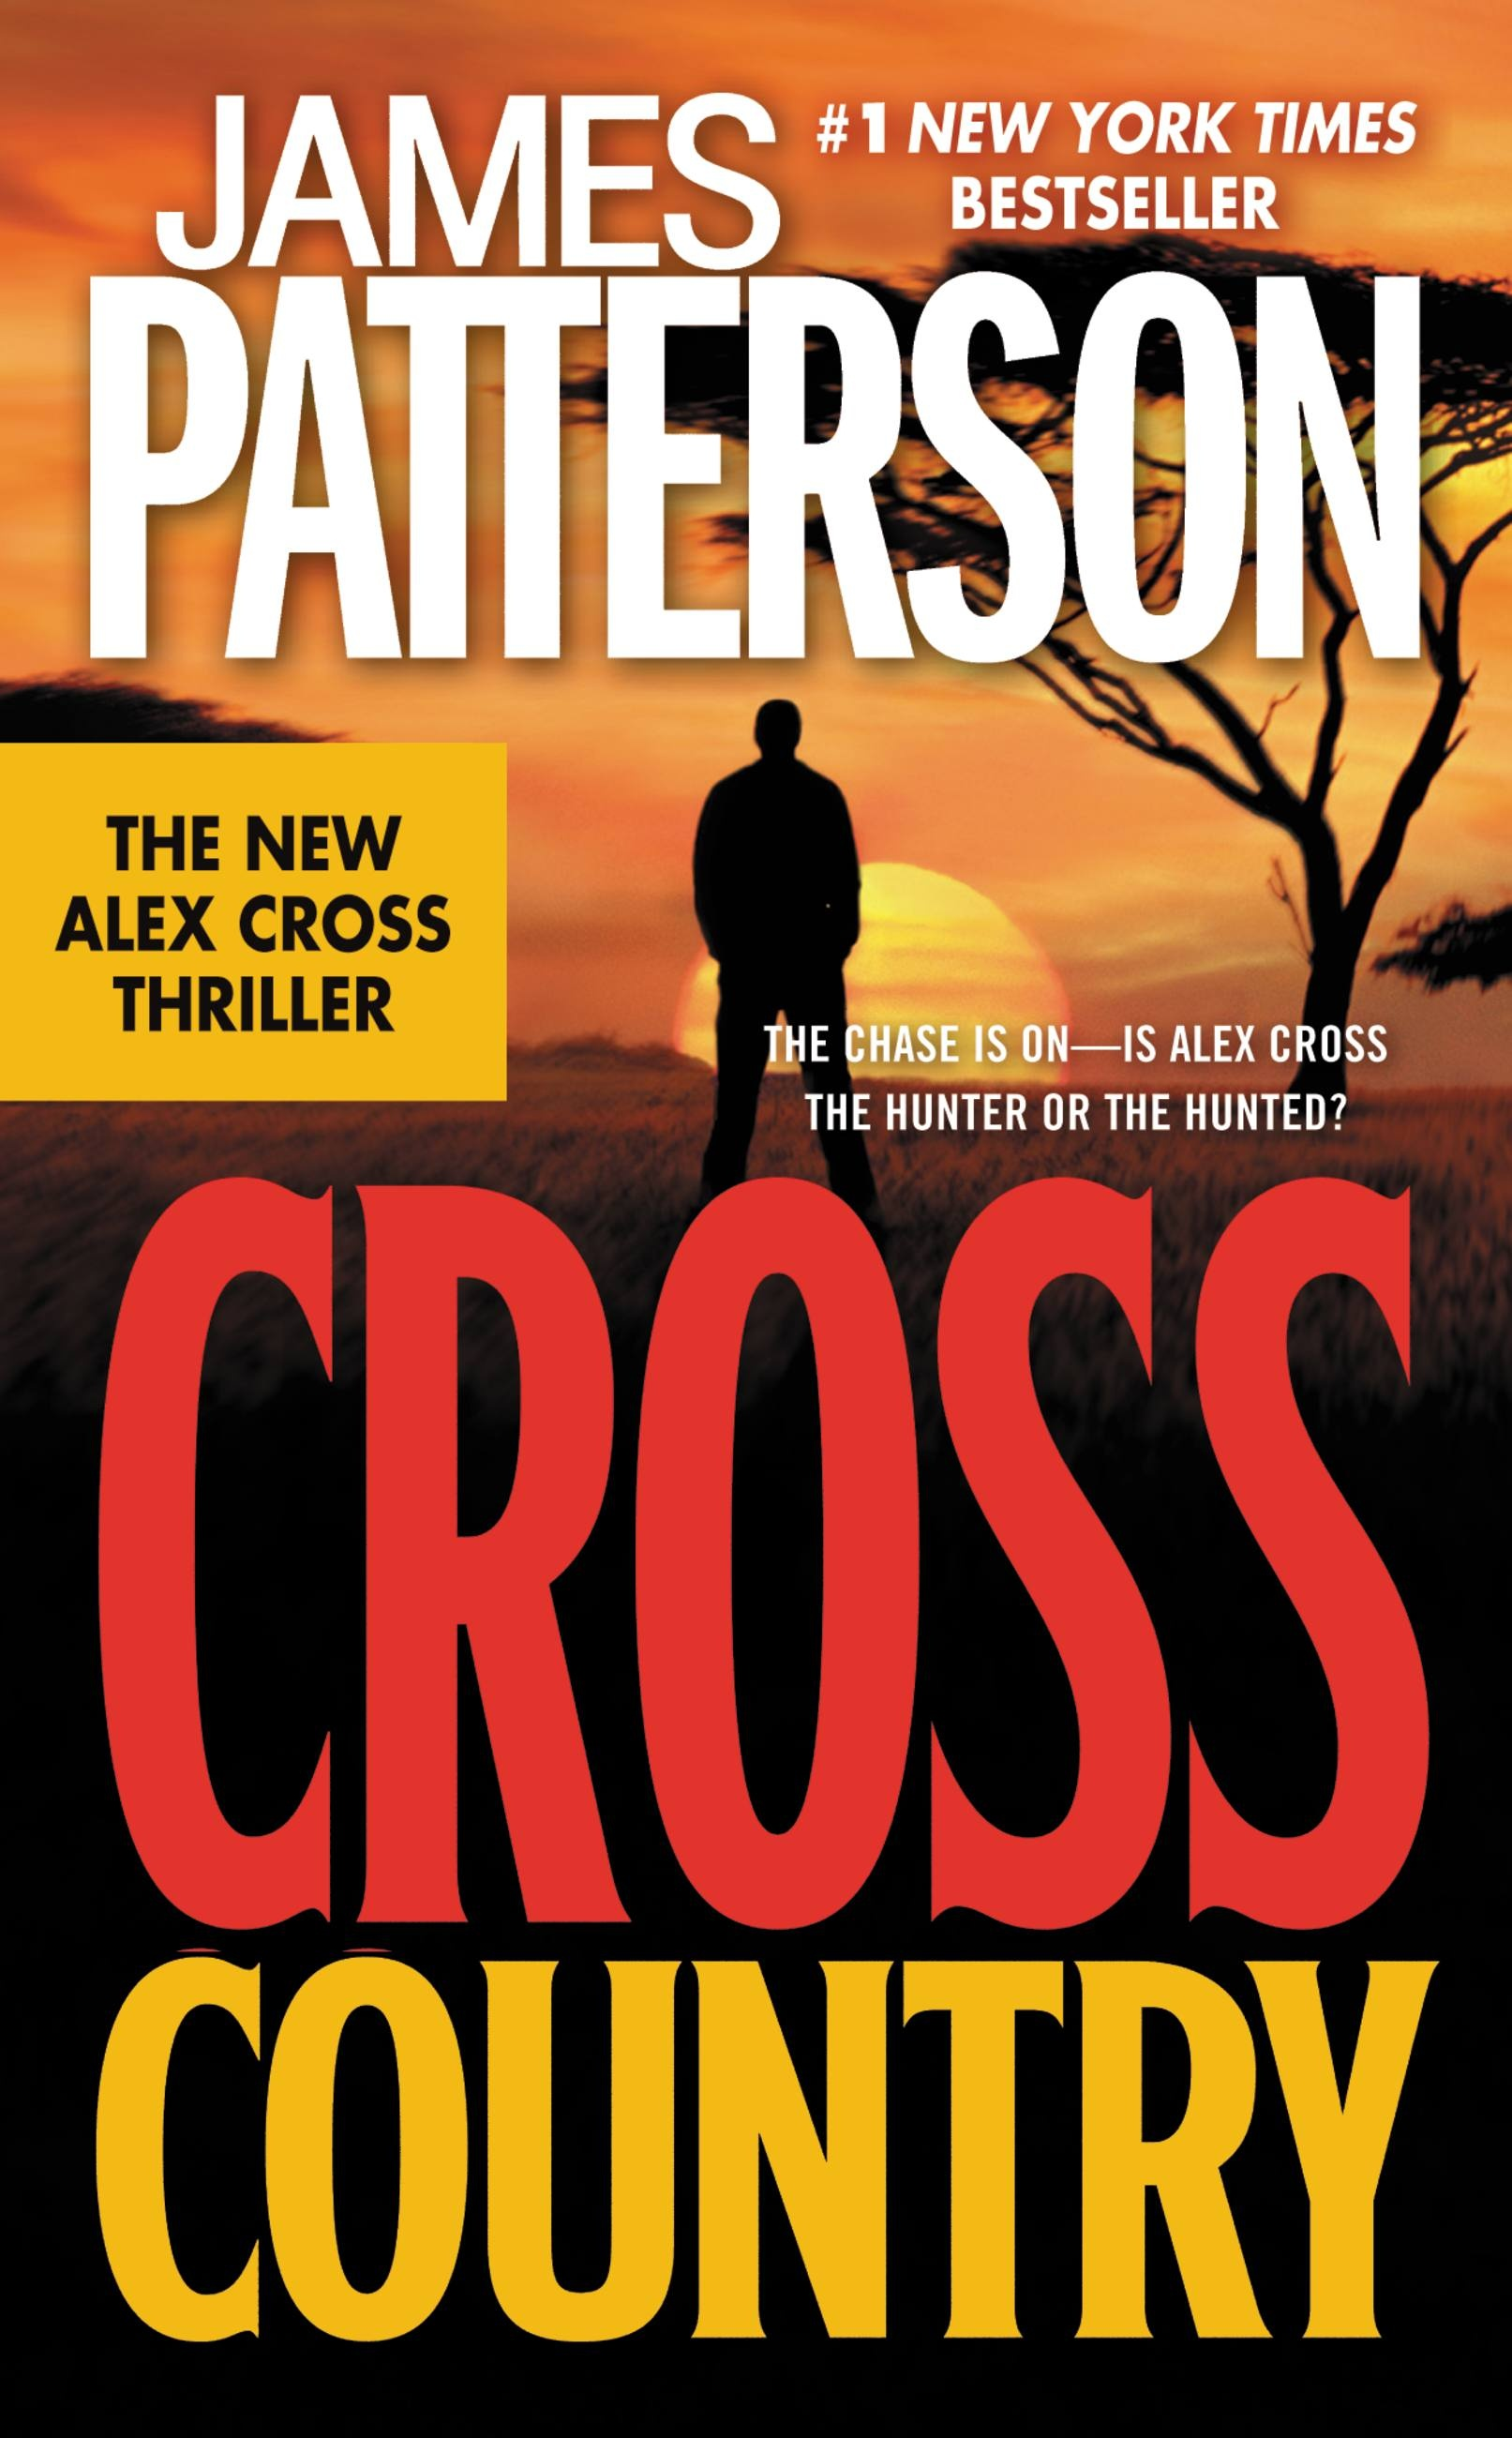 Cross Country by James Patterson | Hachette Book Group